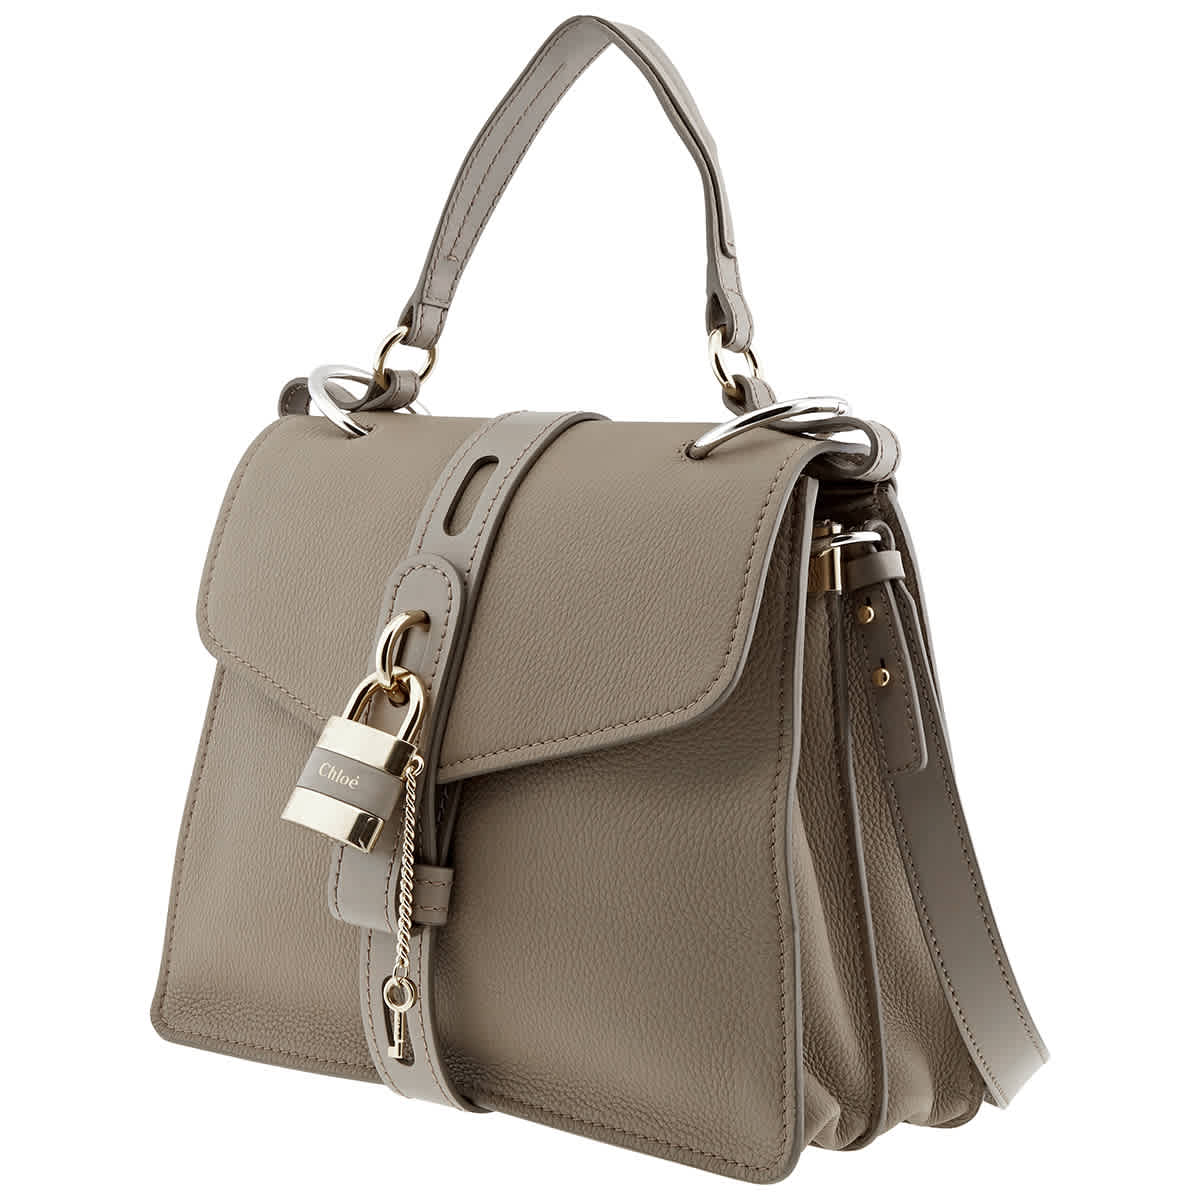 Chloé GREY MEDIUM ABY DAY BAG